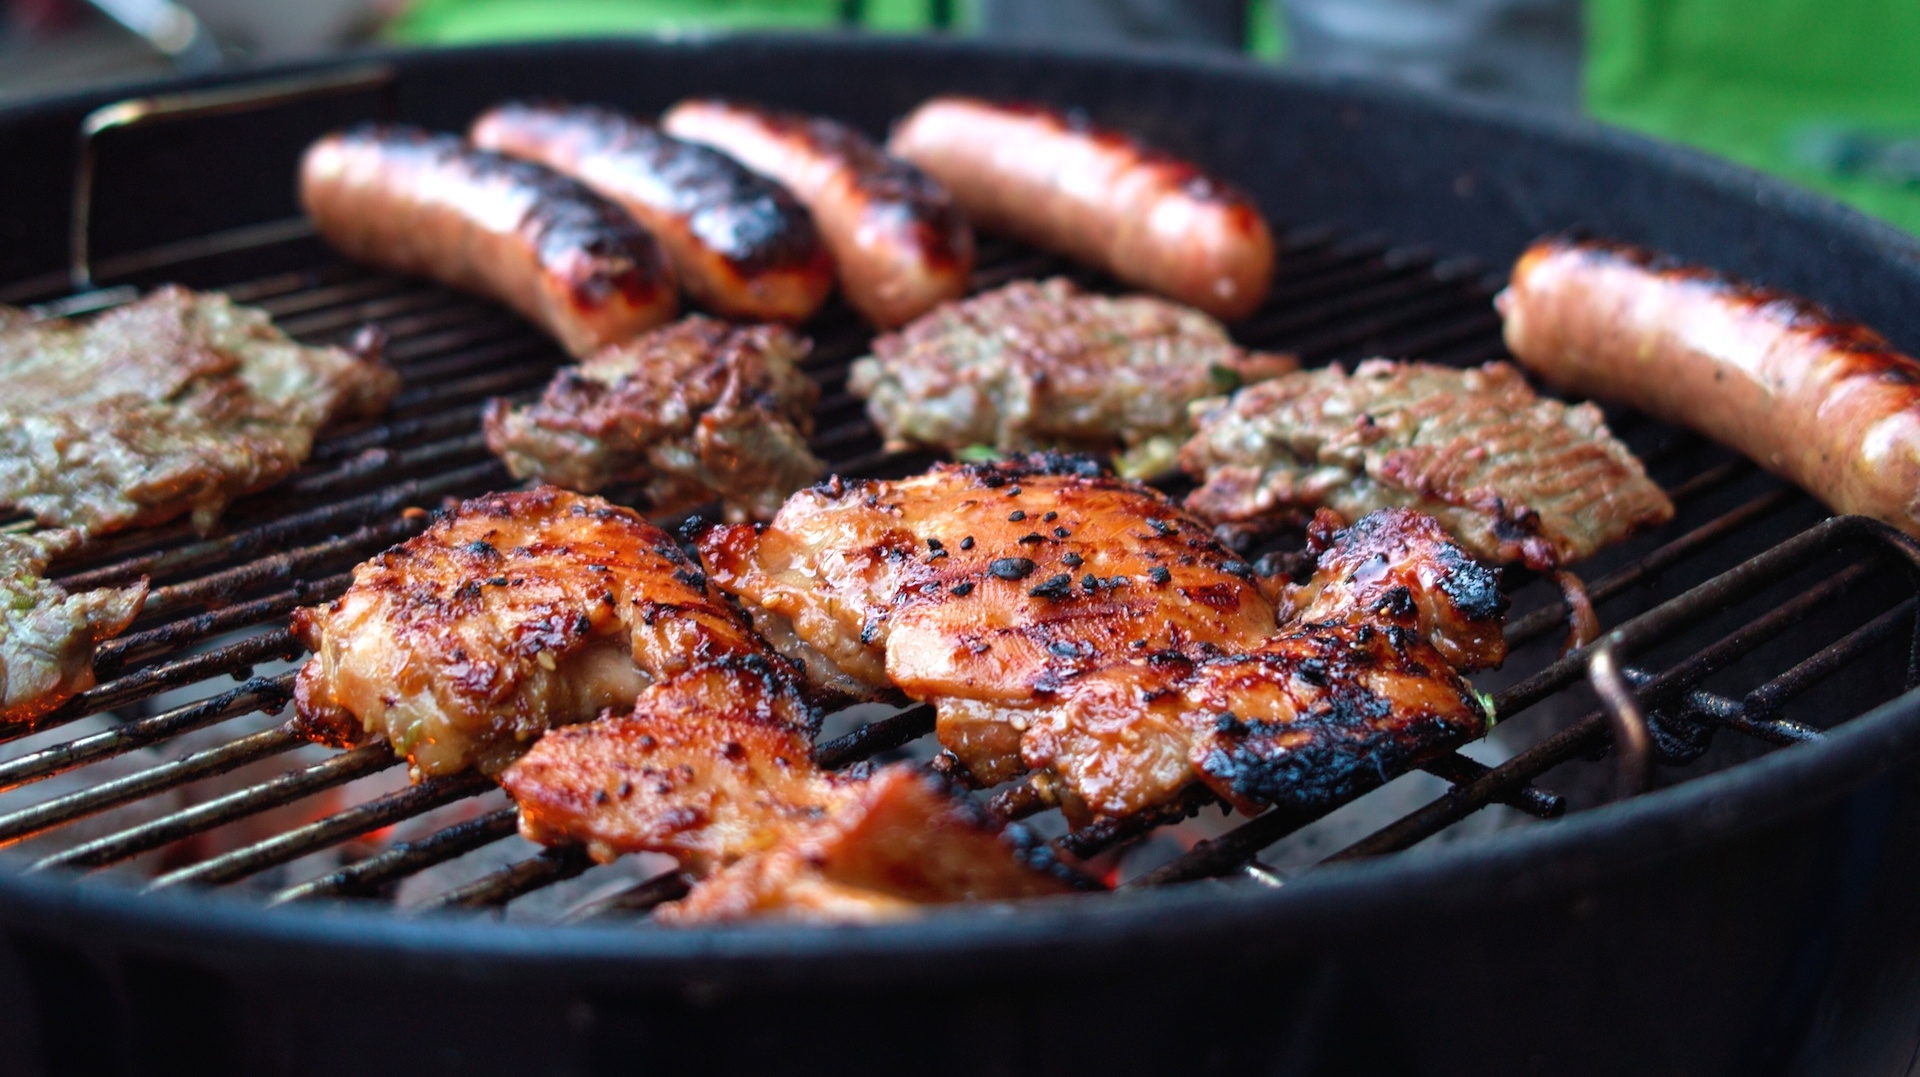 Labor Day weekend: America, you're grilling your burgers wrong and it could kill you